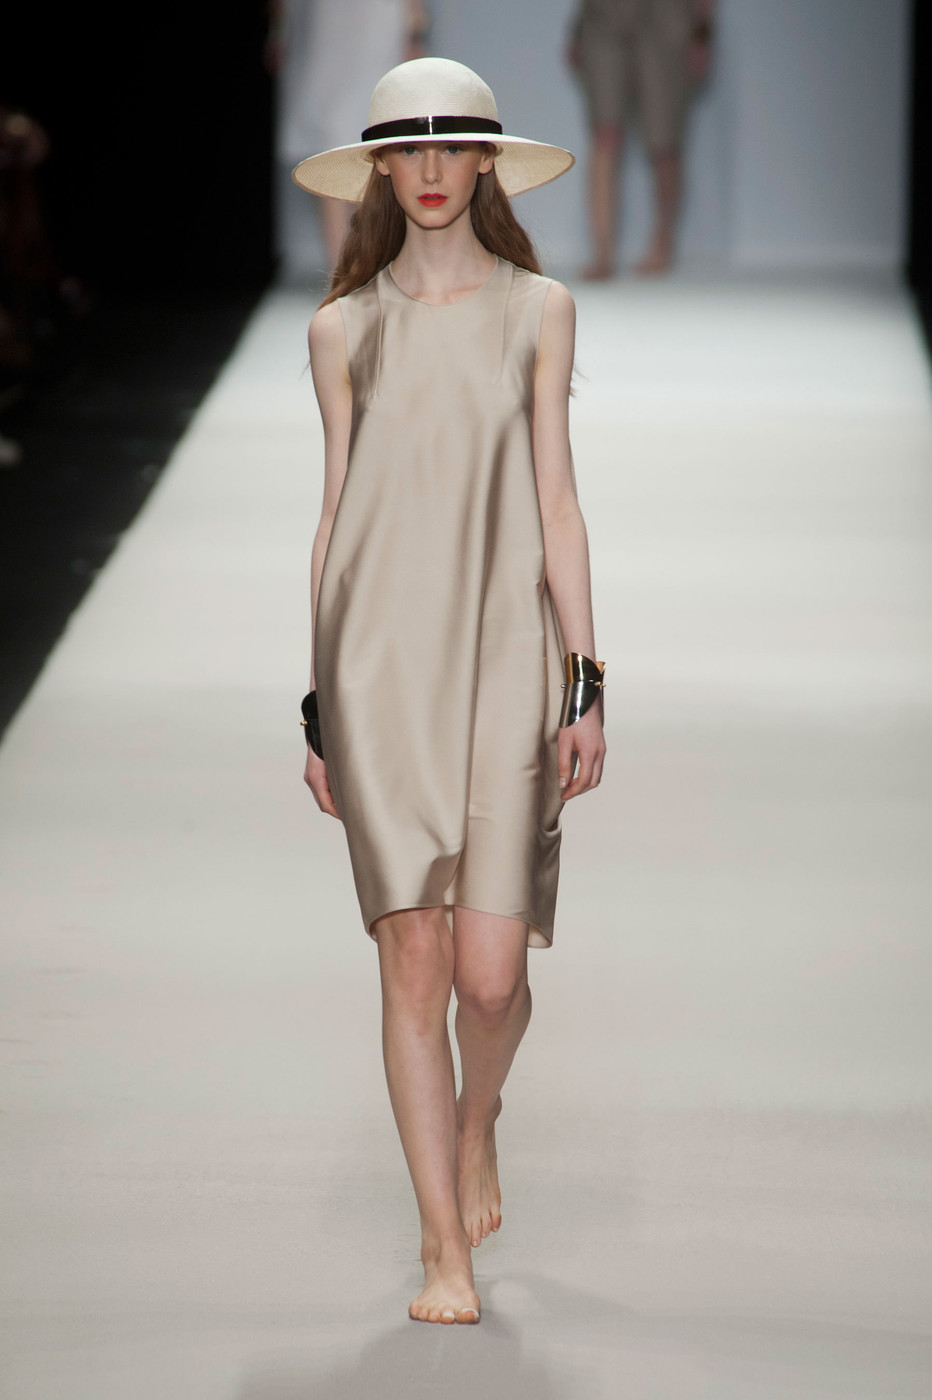 Maison rabih kayrouz at paris fashion week spring 2013 for Fashion maison